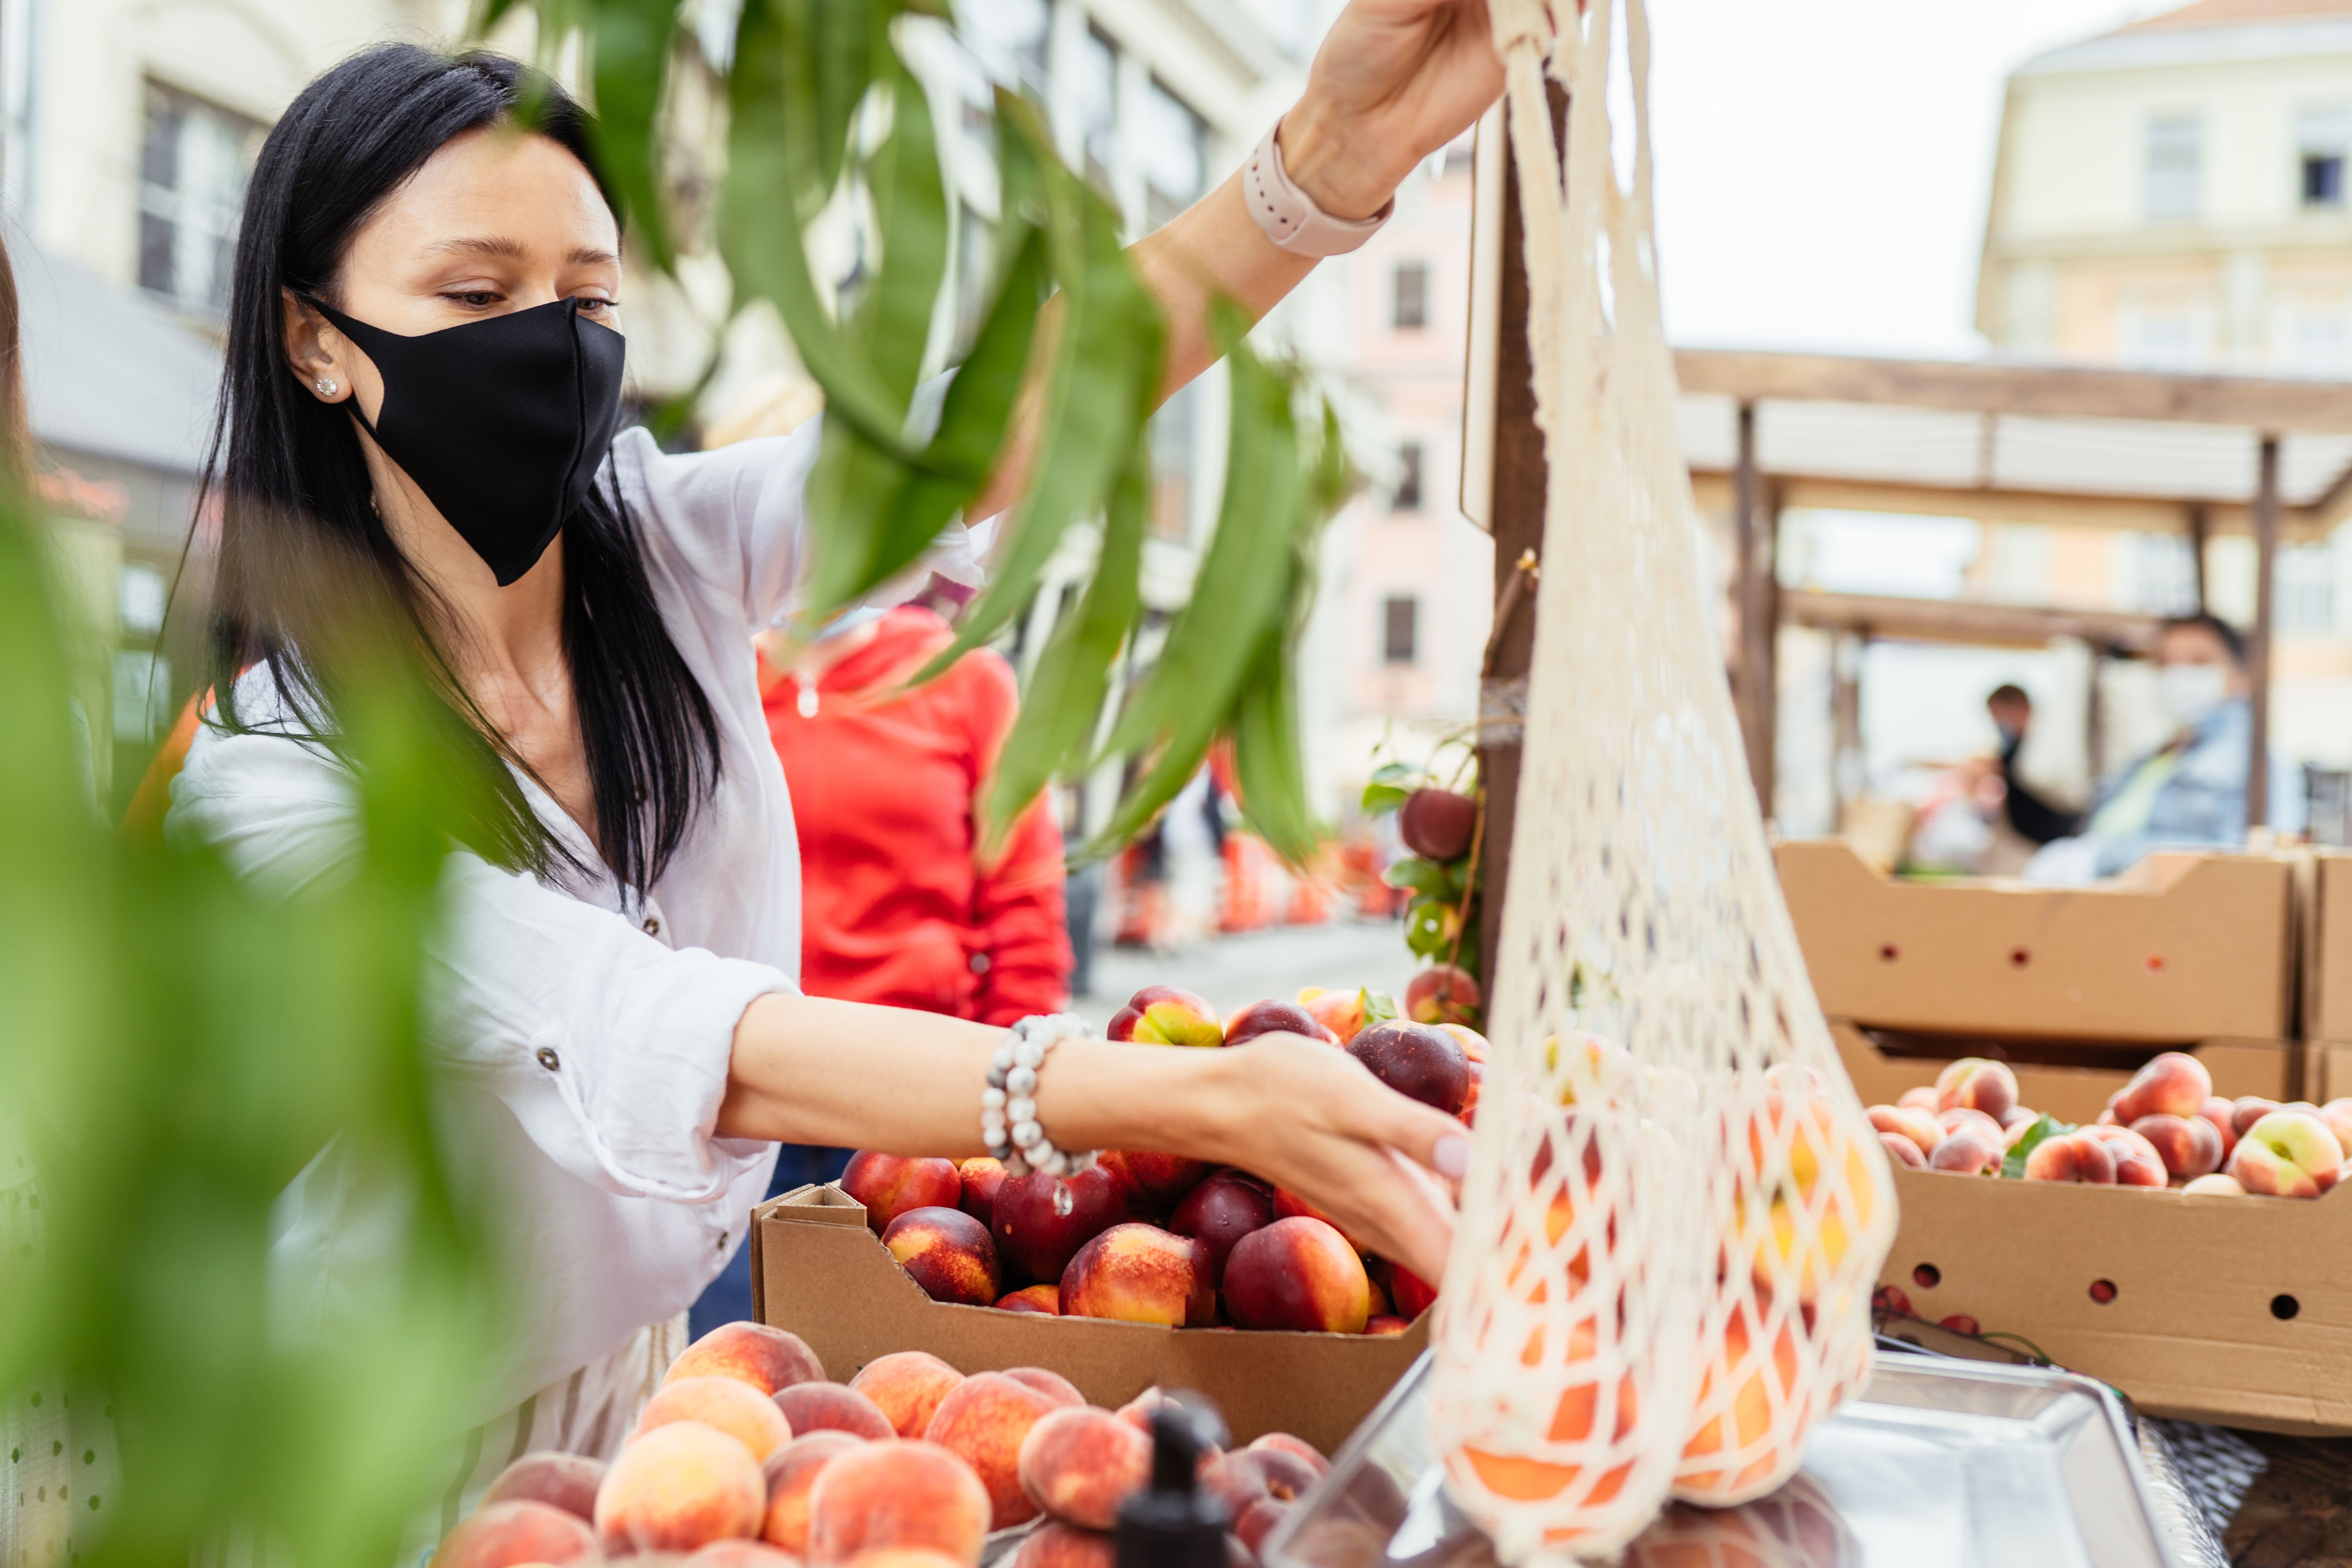 Woman in mask shopping for peaches at market